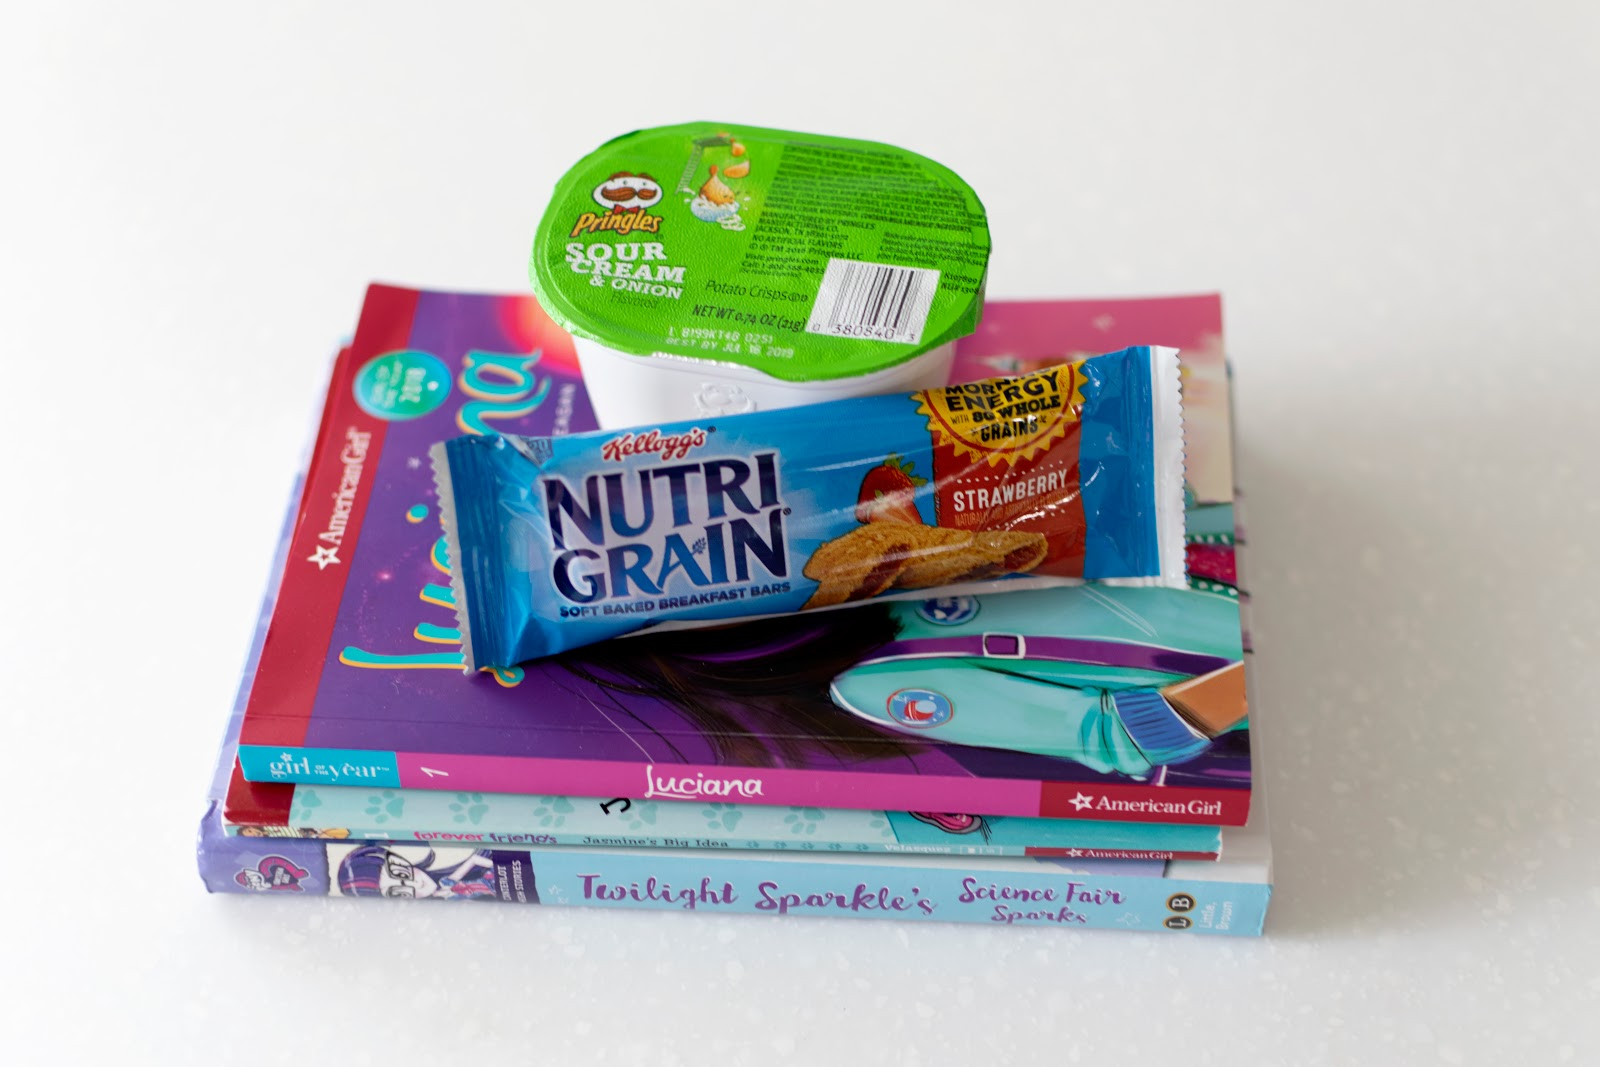 back to school free book program kelloggs scholastic target pringles nutrigrain reading kids read girl nook corner